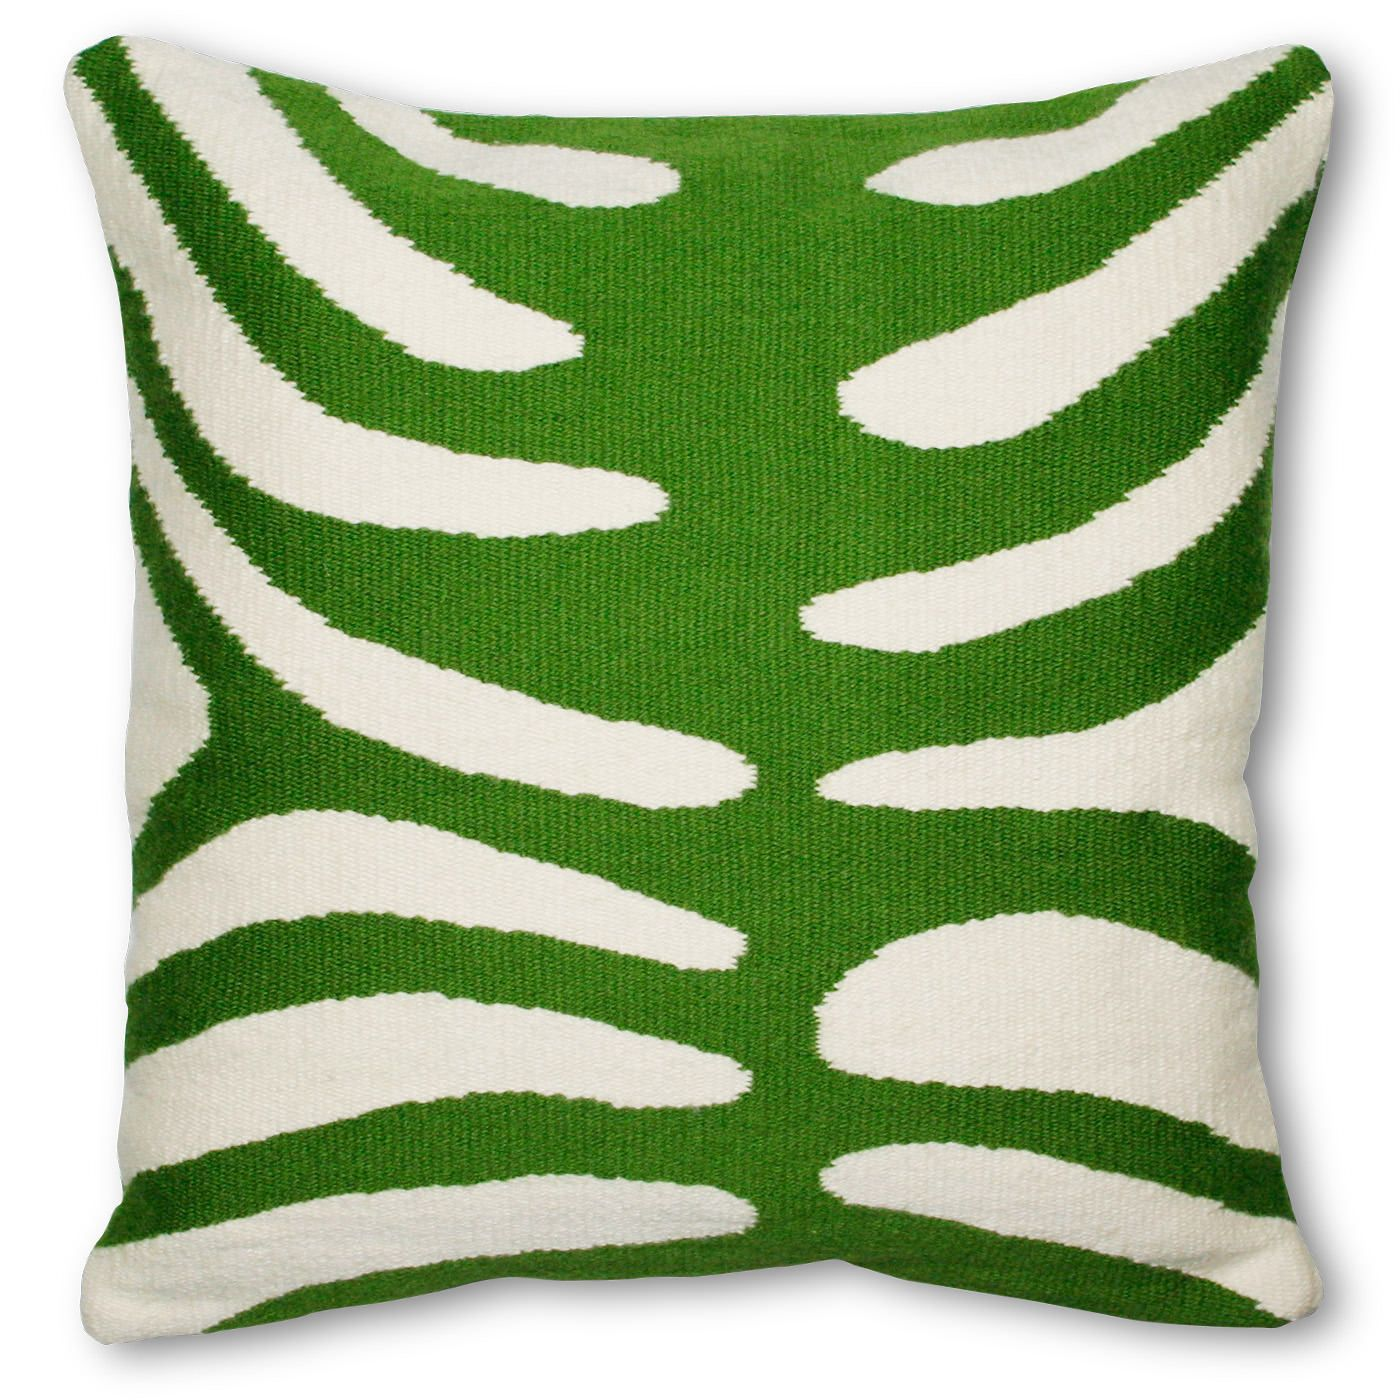 cruelty freethis is a zebra pillow even a zebra would ownall of  - cruelty freethis is a zebra pillow even a zebra would ownall of